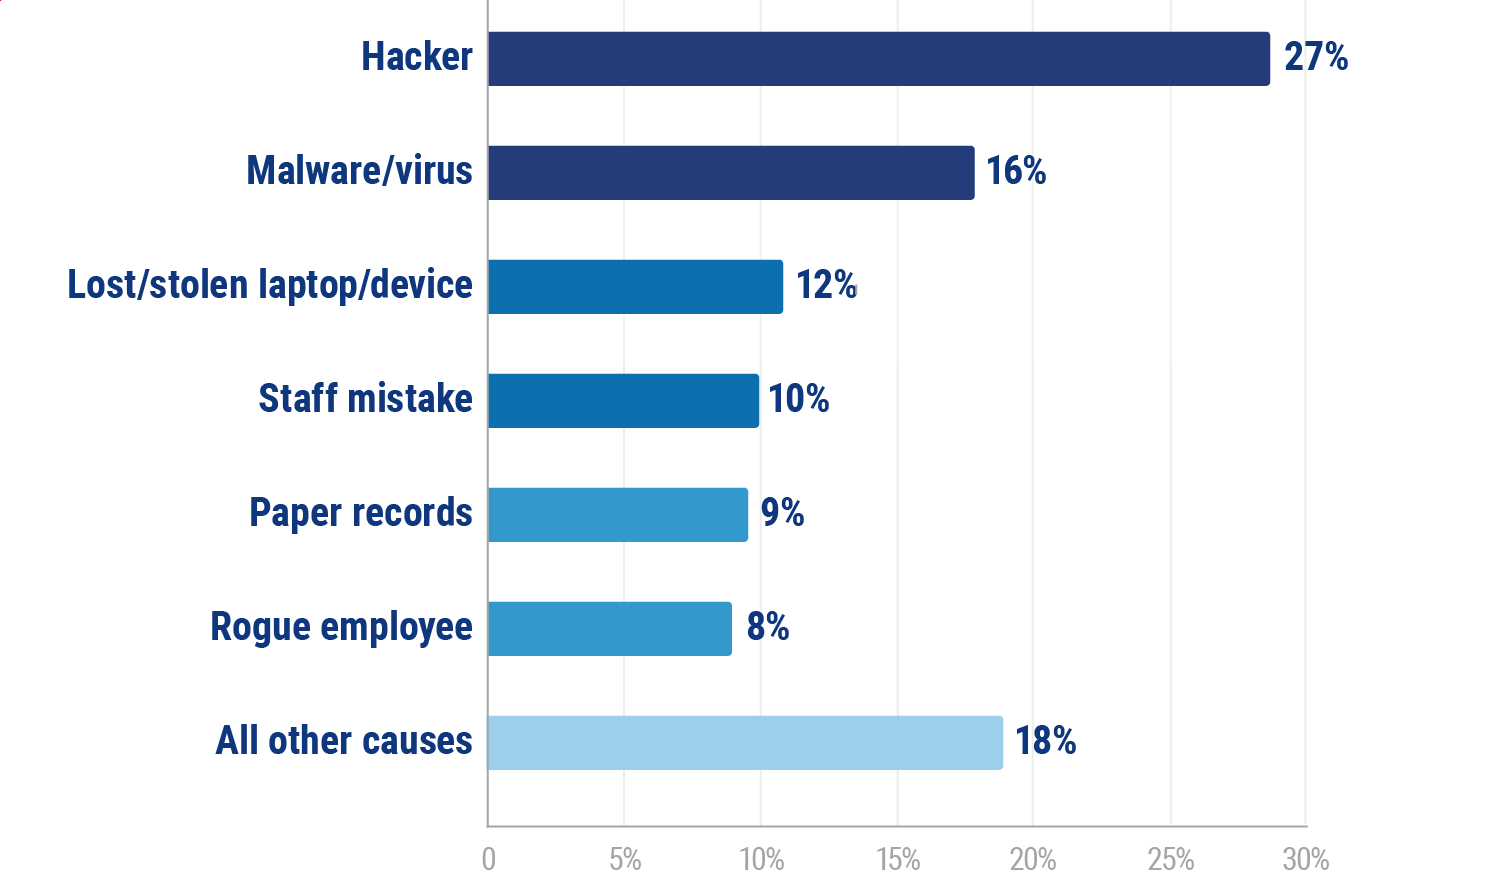 Top 5 Cyber Insurance Claims by Cause of Loss